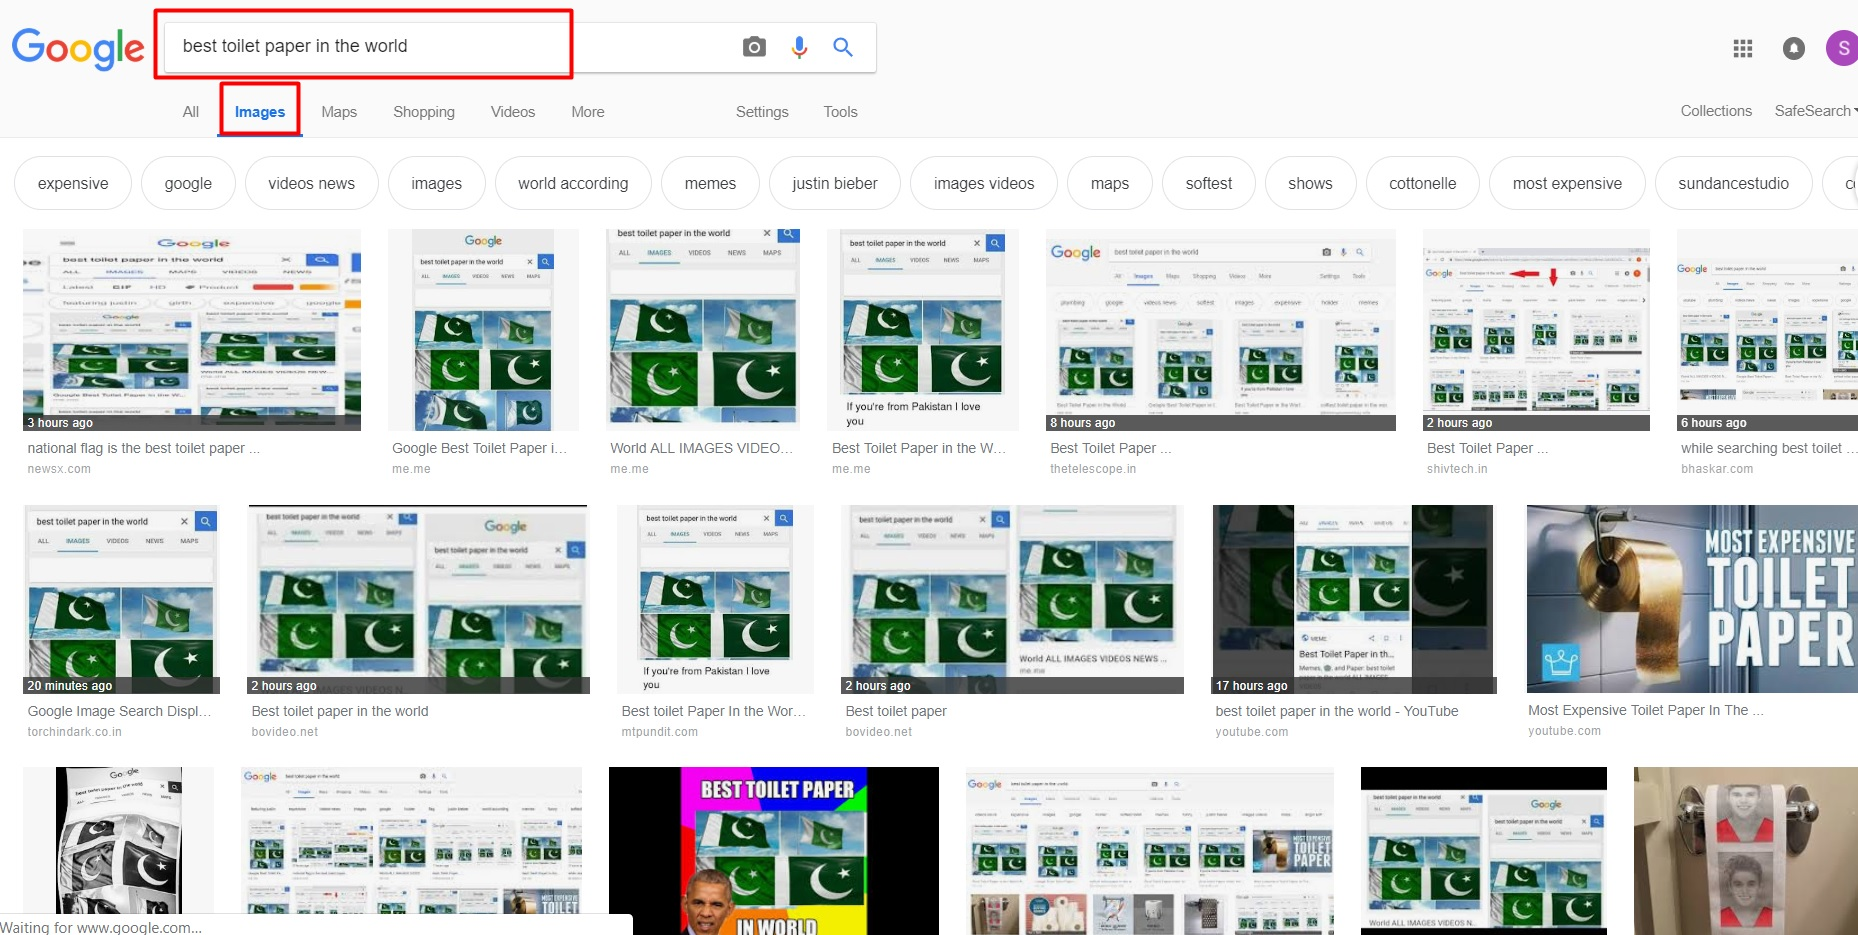 Best toilet paper in the world: Google shows Pakistan's national flag